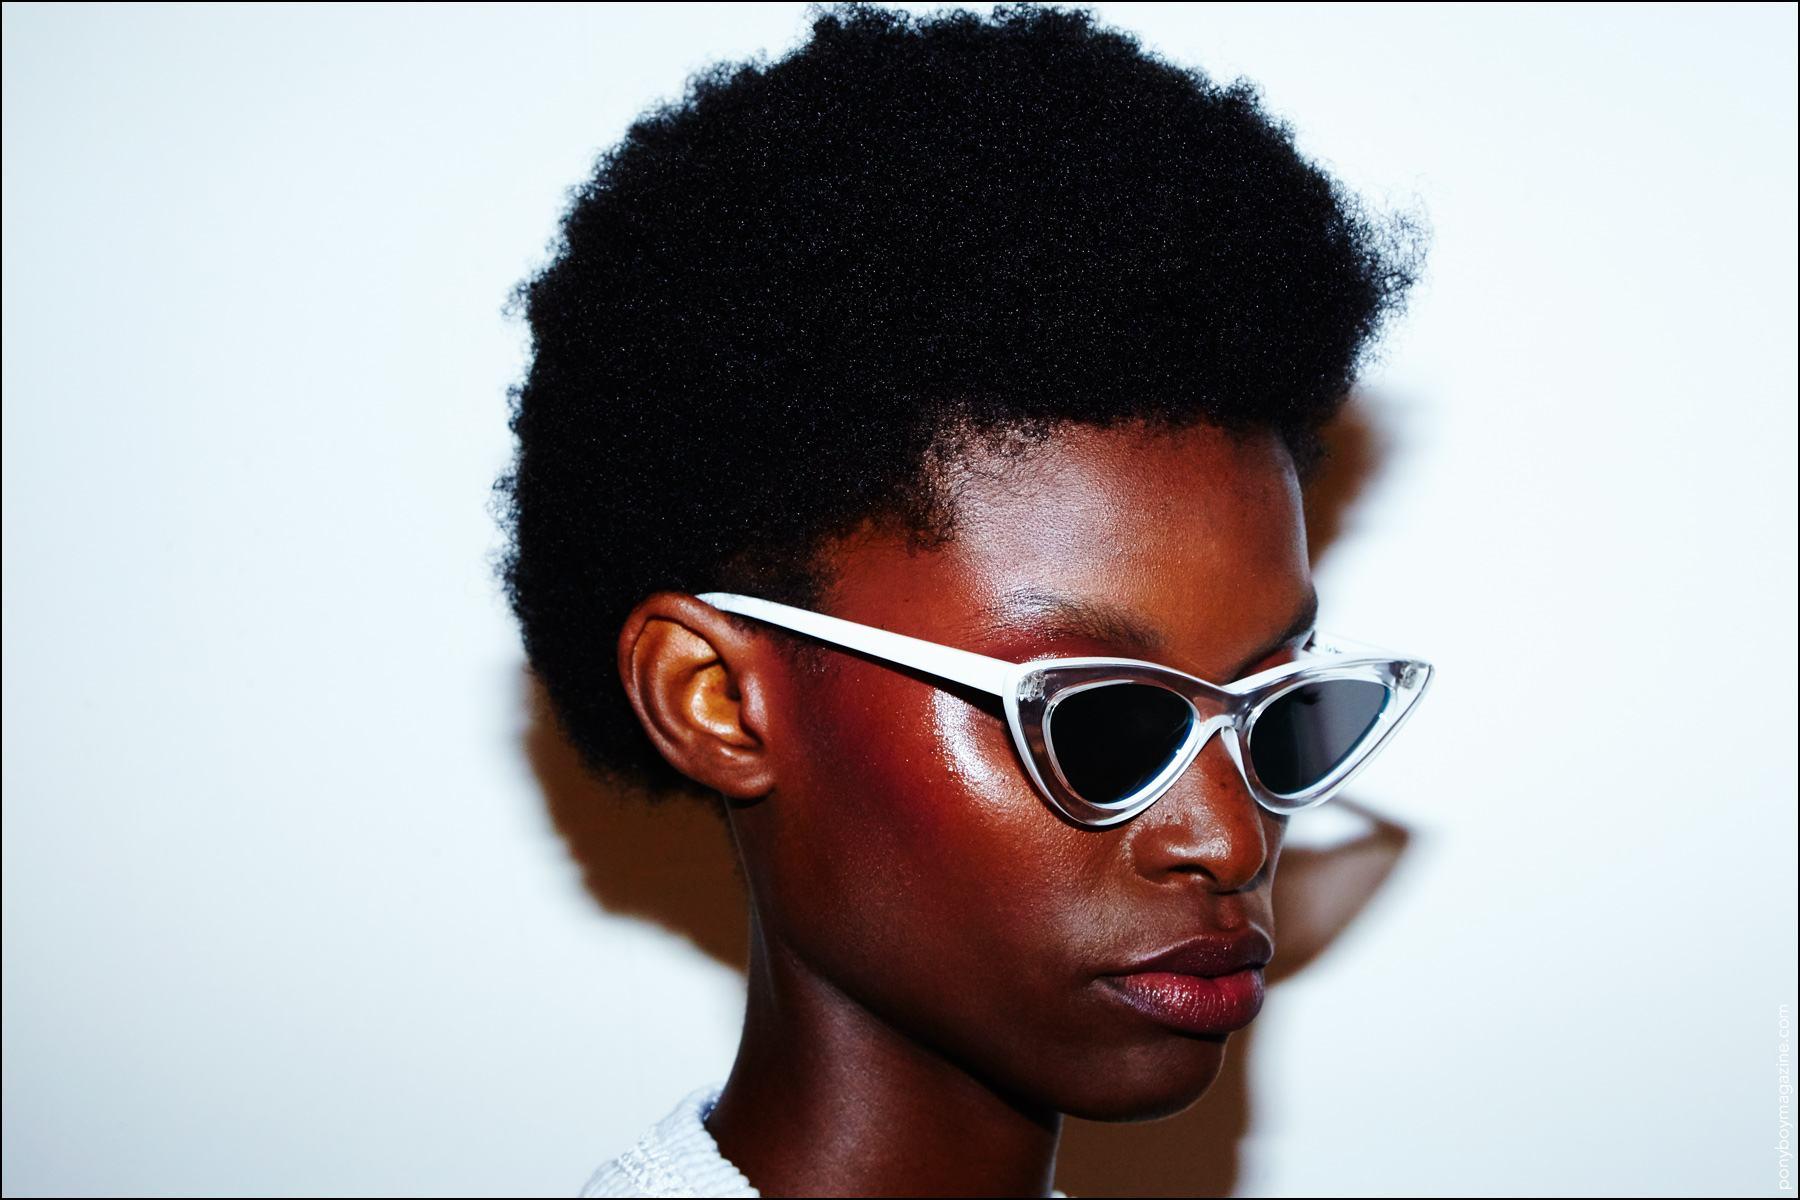 A model in afro and cat-eye glasses snapped backstage before walking for Adam Selman S/S17 show. Photography by Alexander Thompson for Ponyboy magazine.